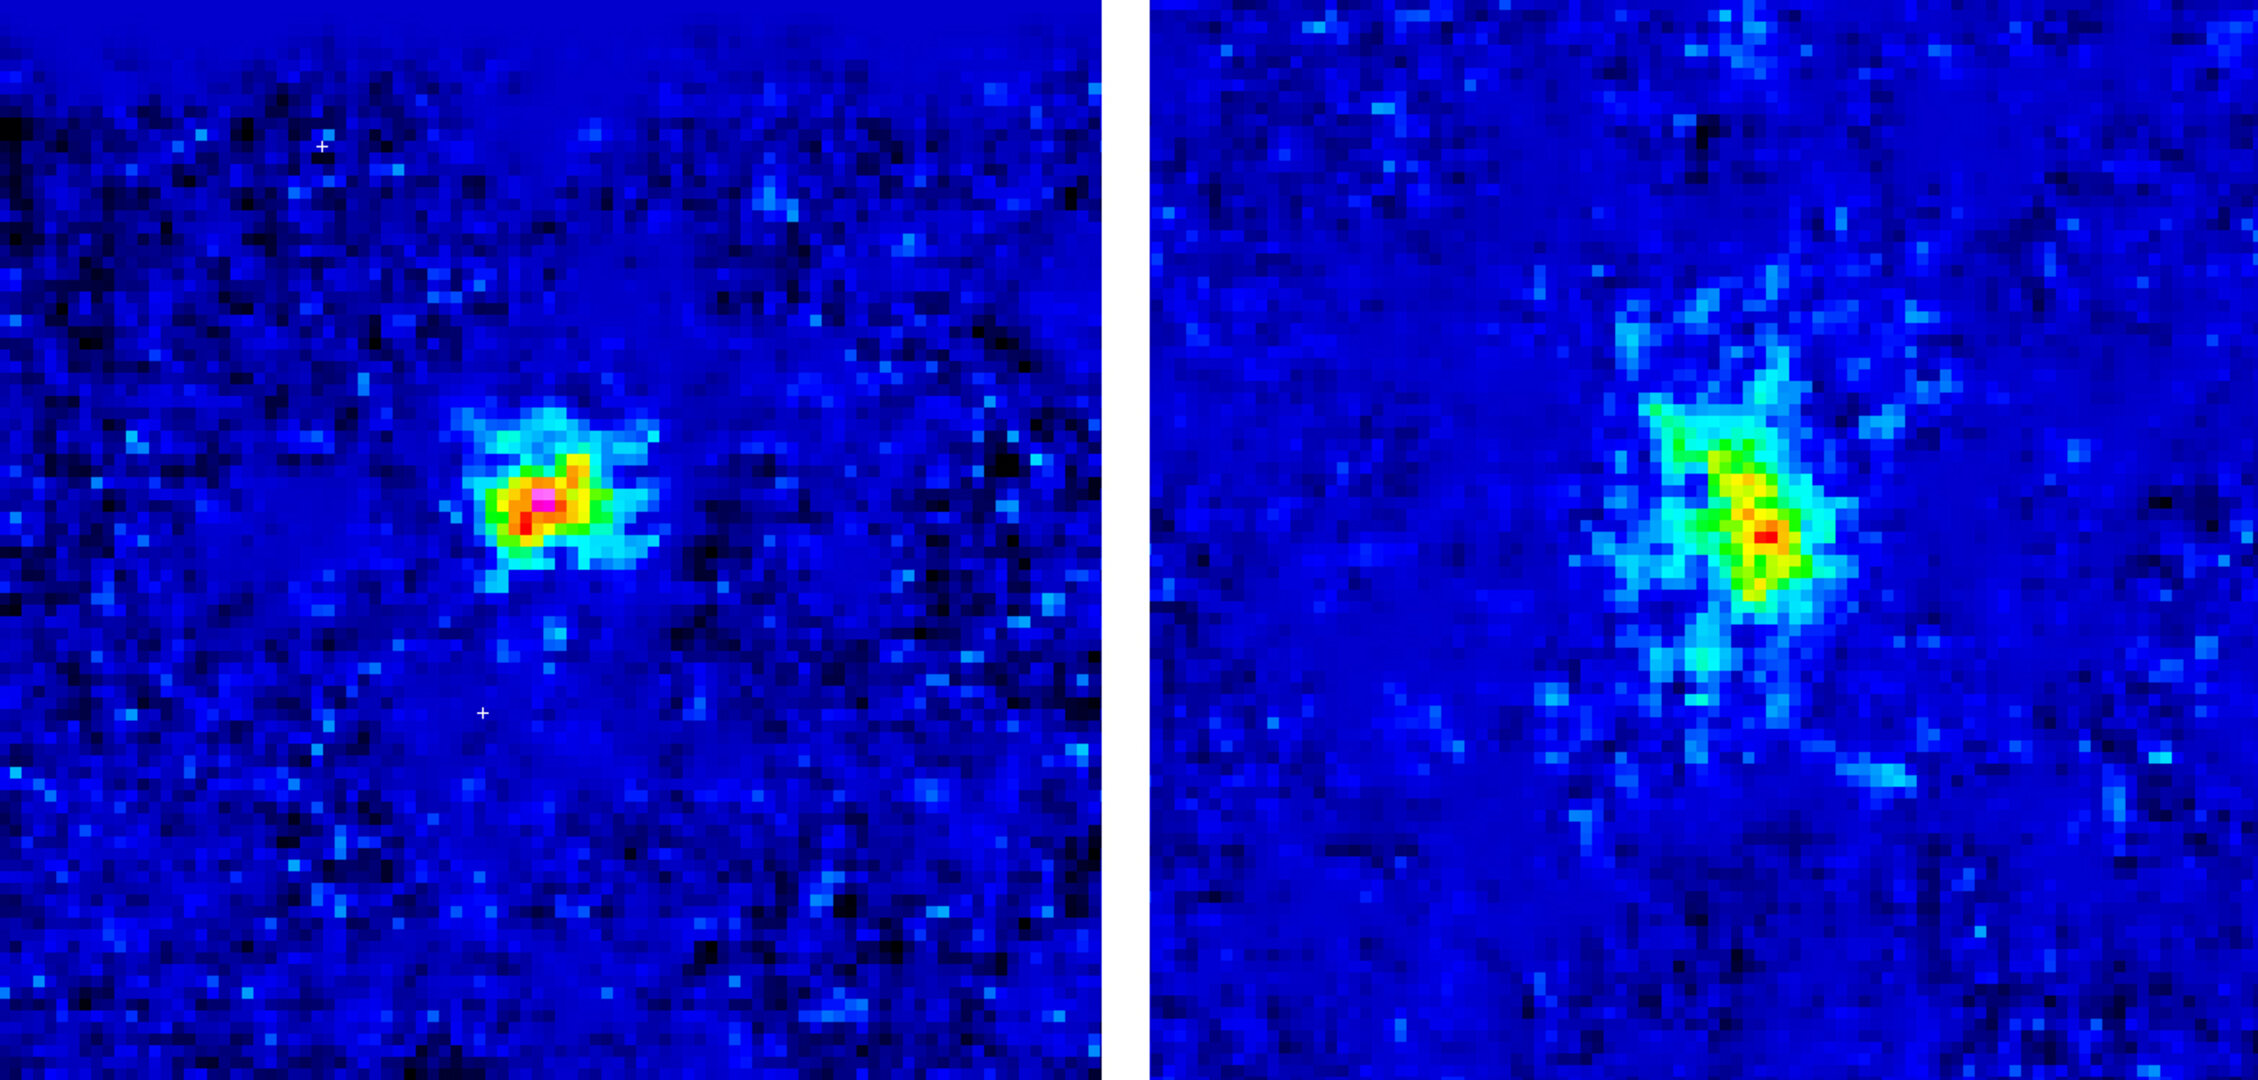 ESO TIMMI2 images of Tempel 1, before and after impact